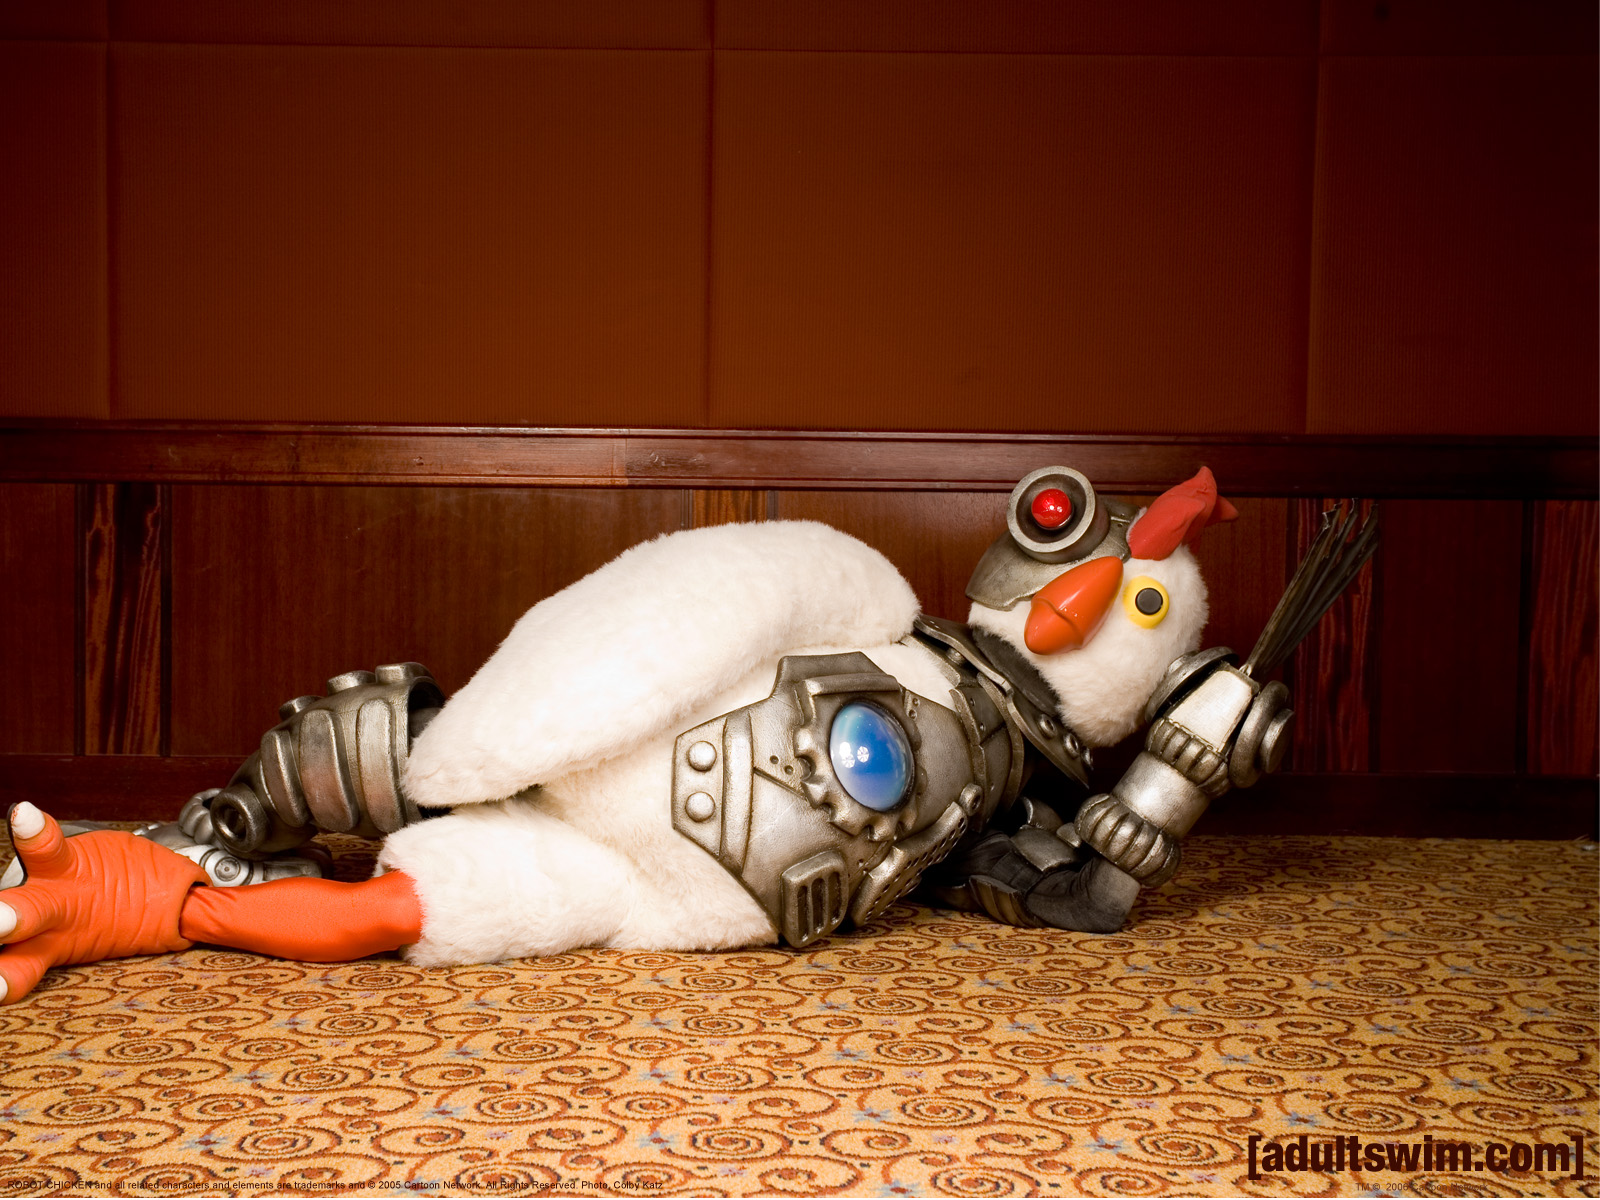 Robot-Chicken-robot-chicken-153705 1600